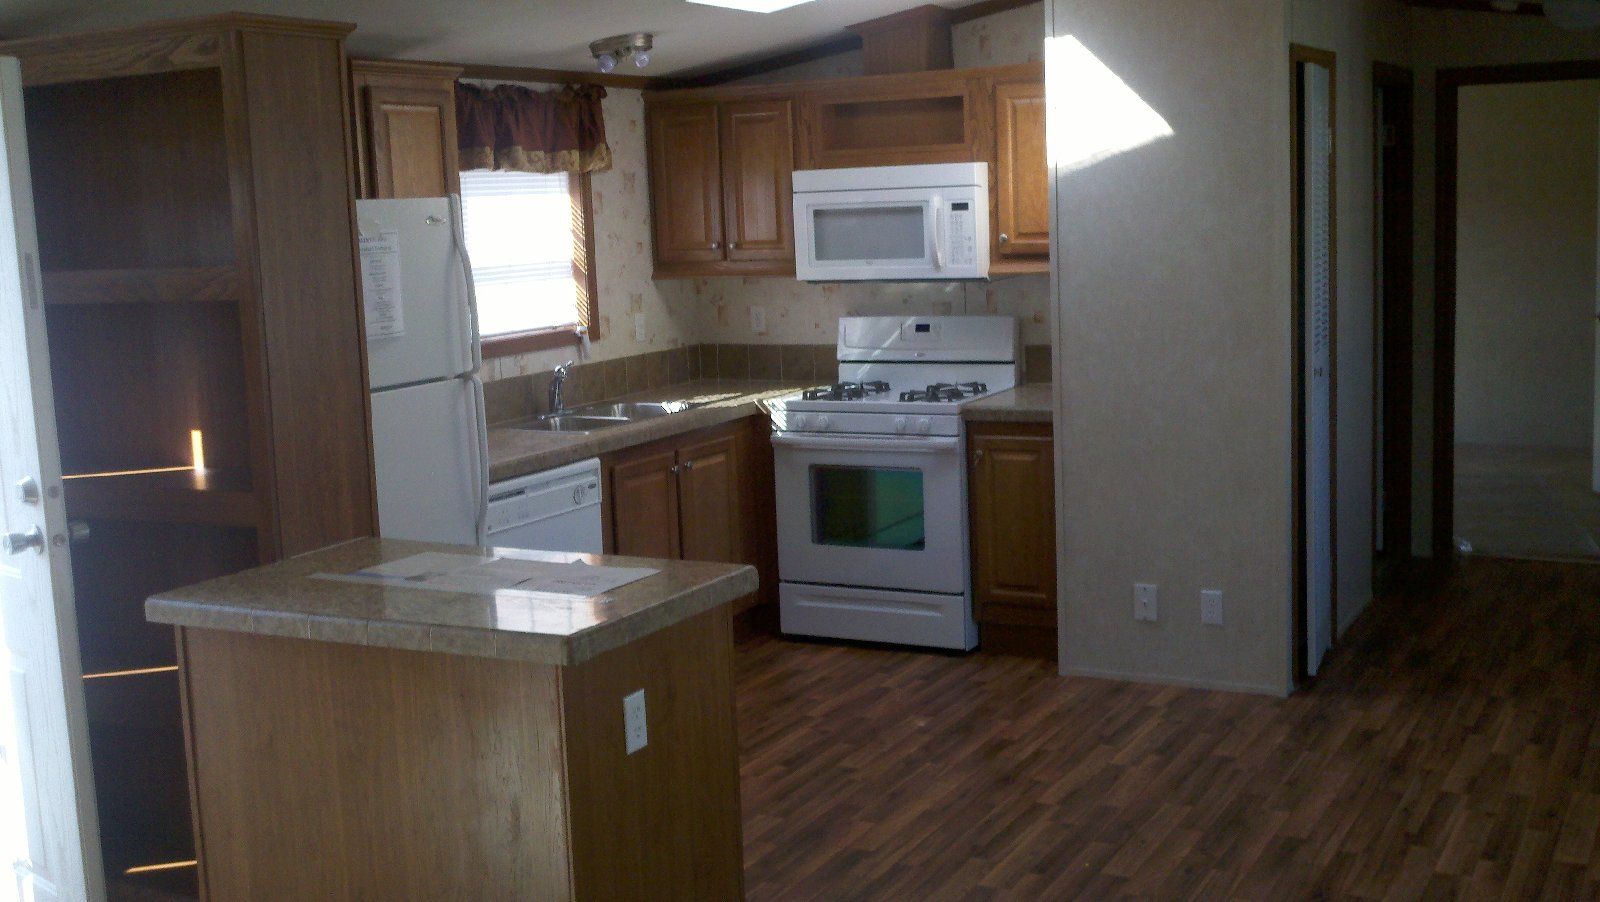 Pictures mobile home kitchens images - Mobile homes kitchen designs ideas ...